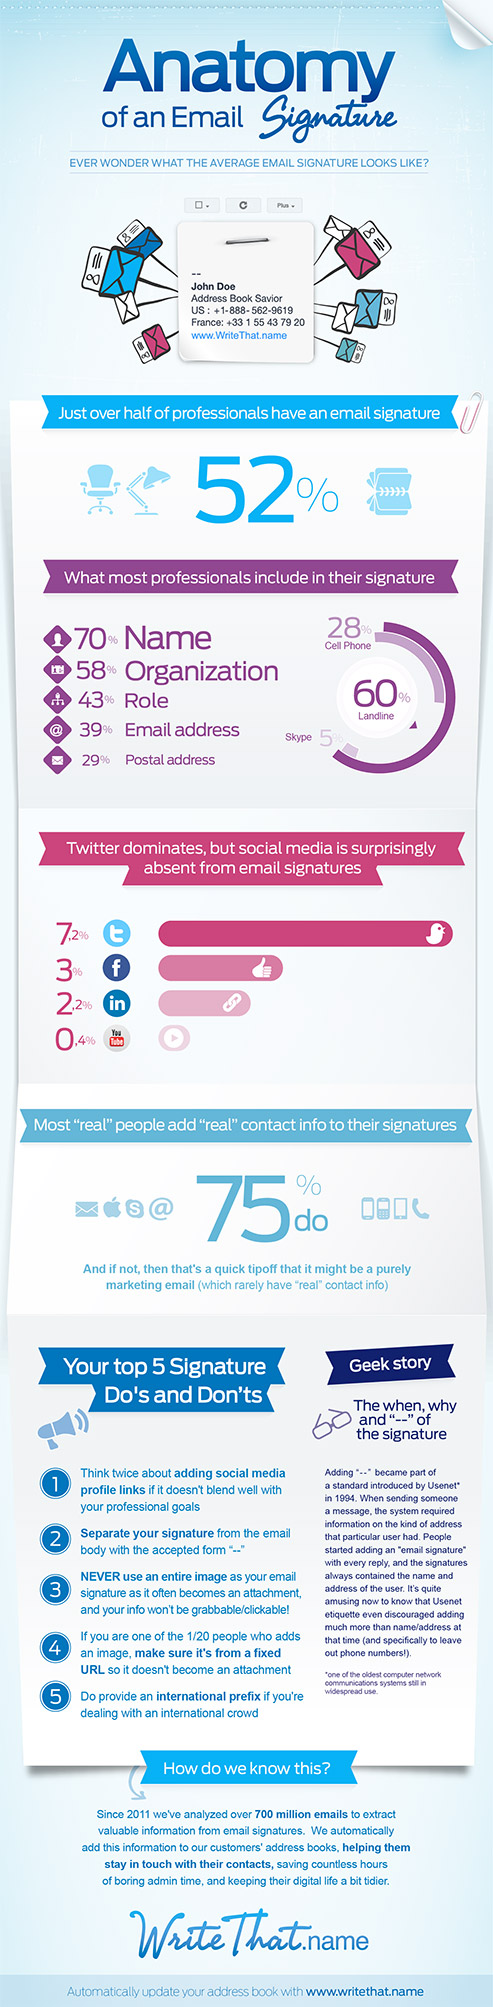 infographic_email